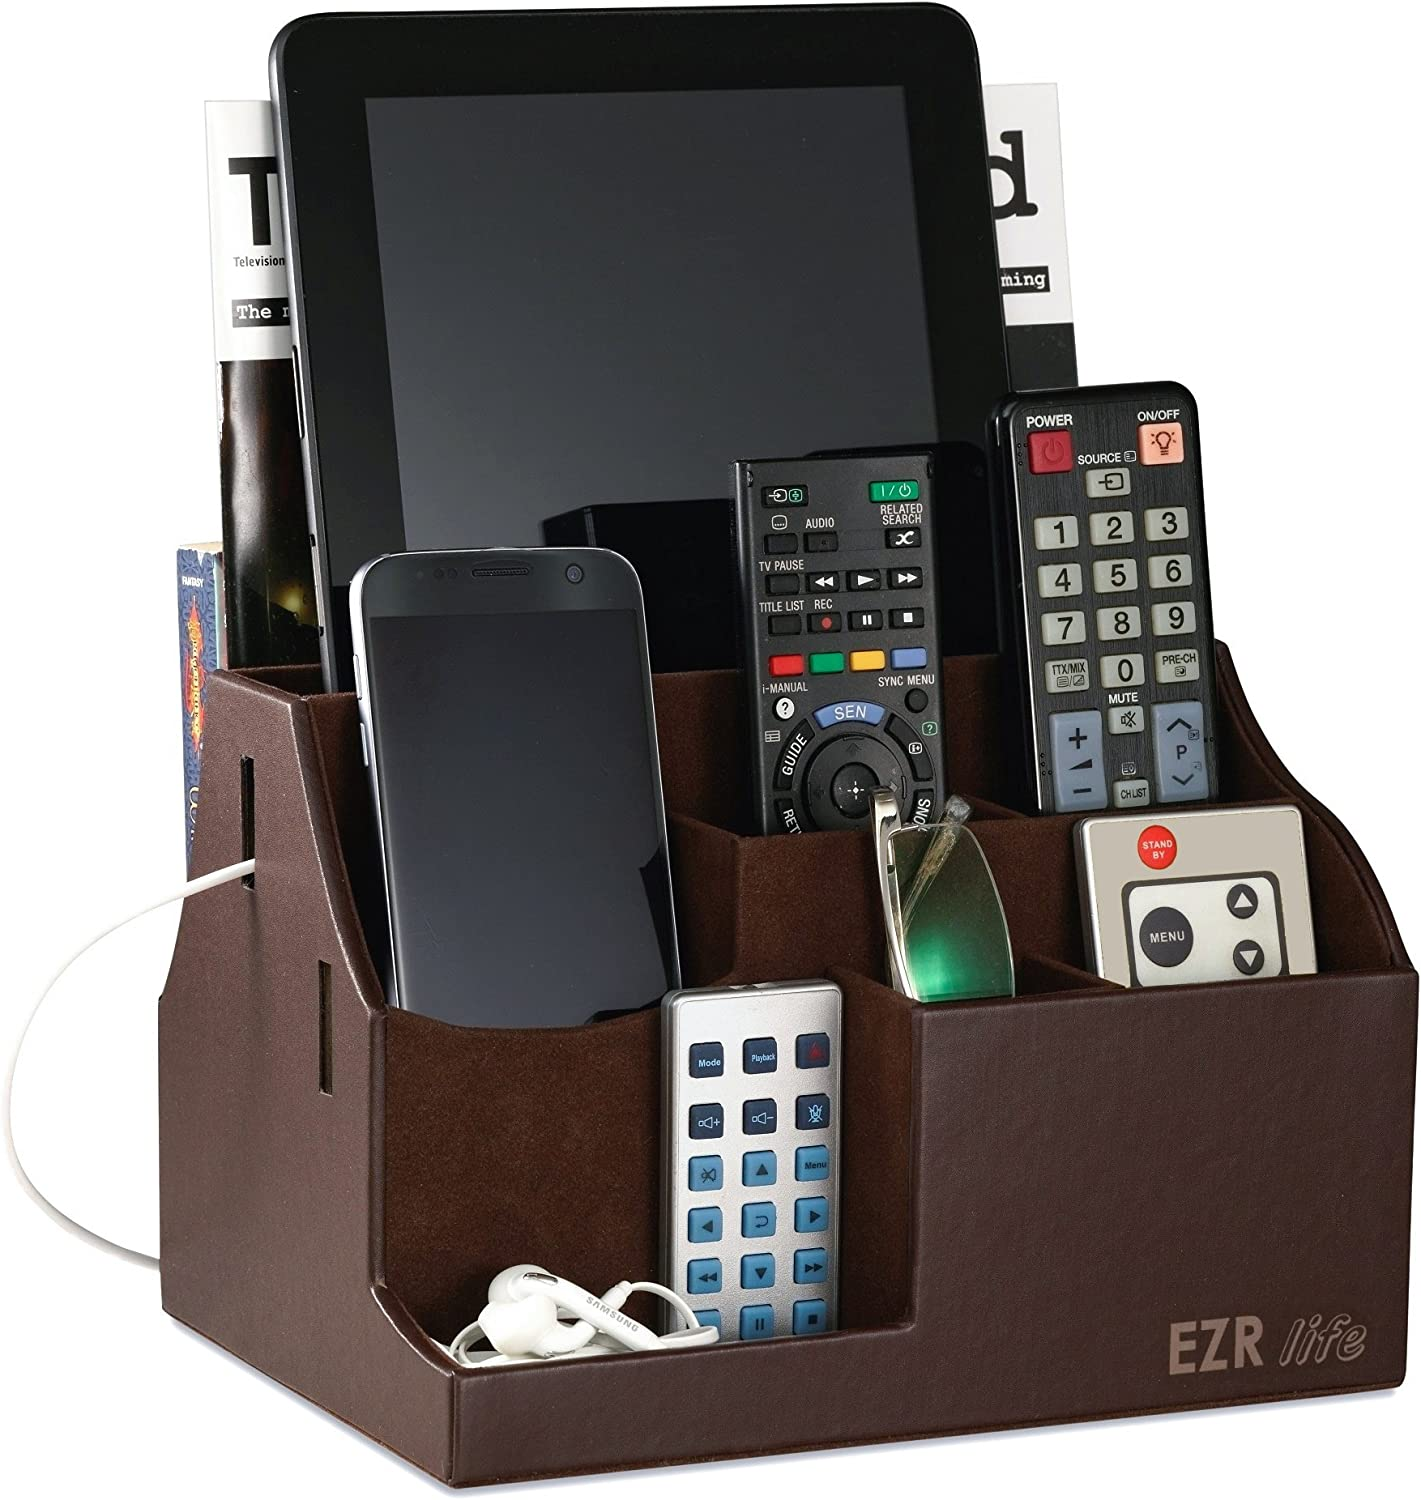 Tablets Also Holds Phones Brown Leather Caddy Glasses 8 compartments, up to 14 remotes Books Organizer EZR life All-in-One Remote Control Holder